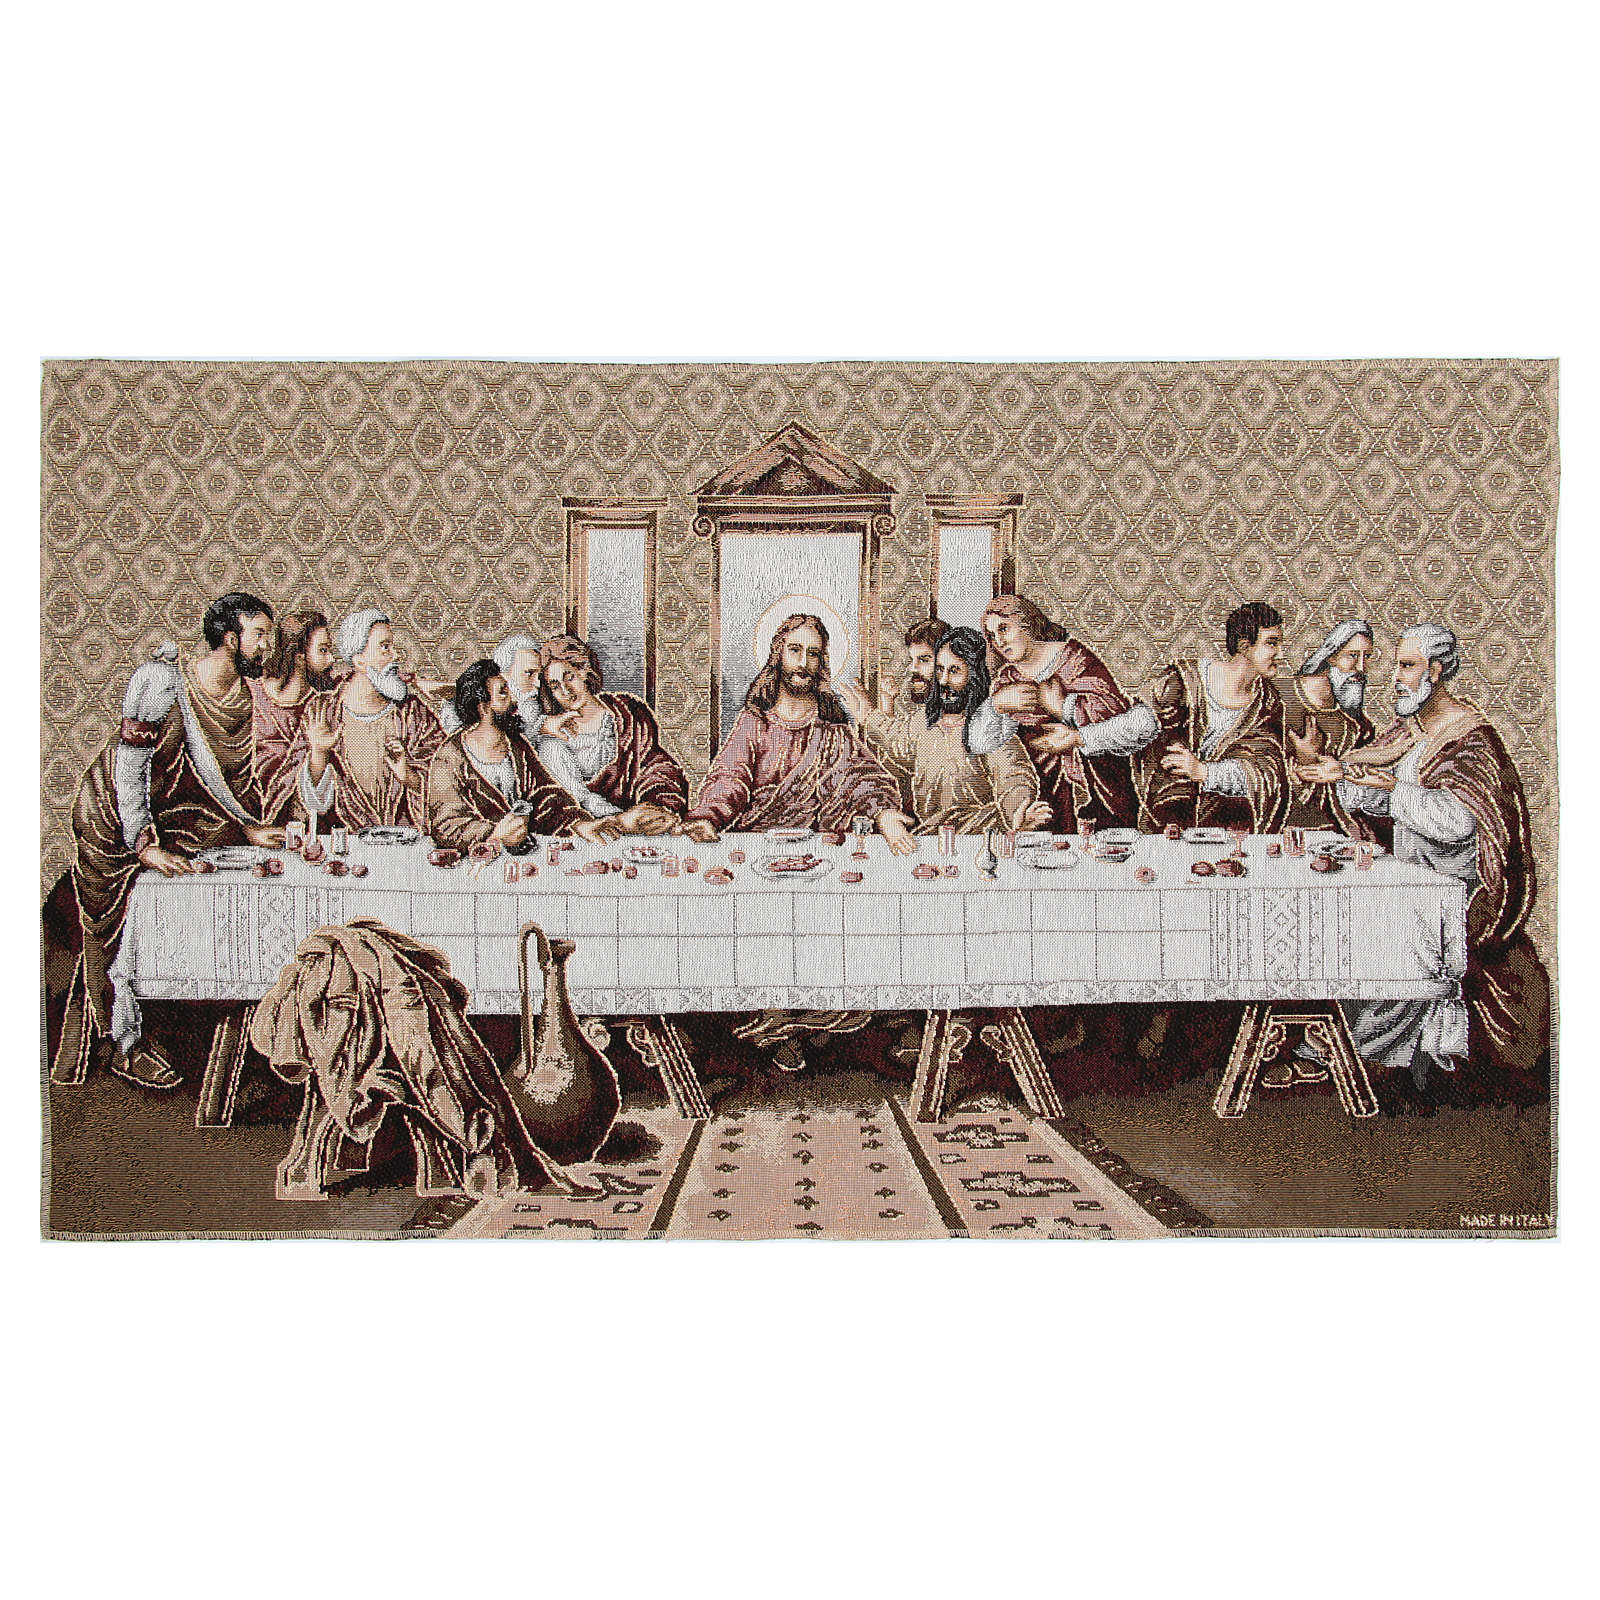 Last Supper tapestry measuring 45x80cm 3